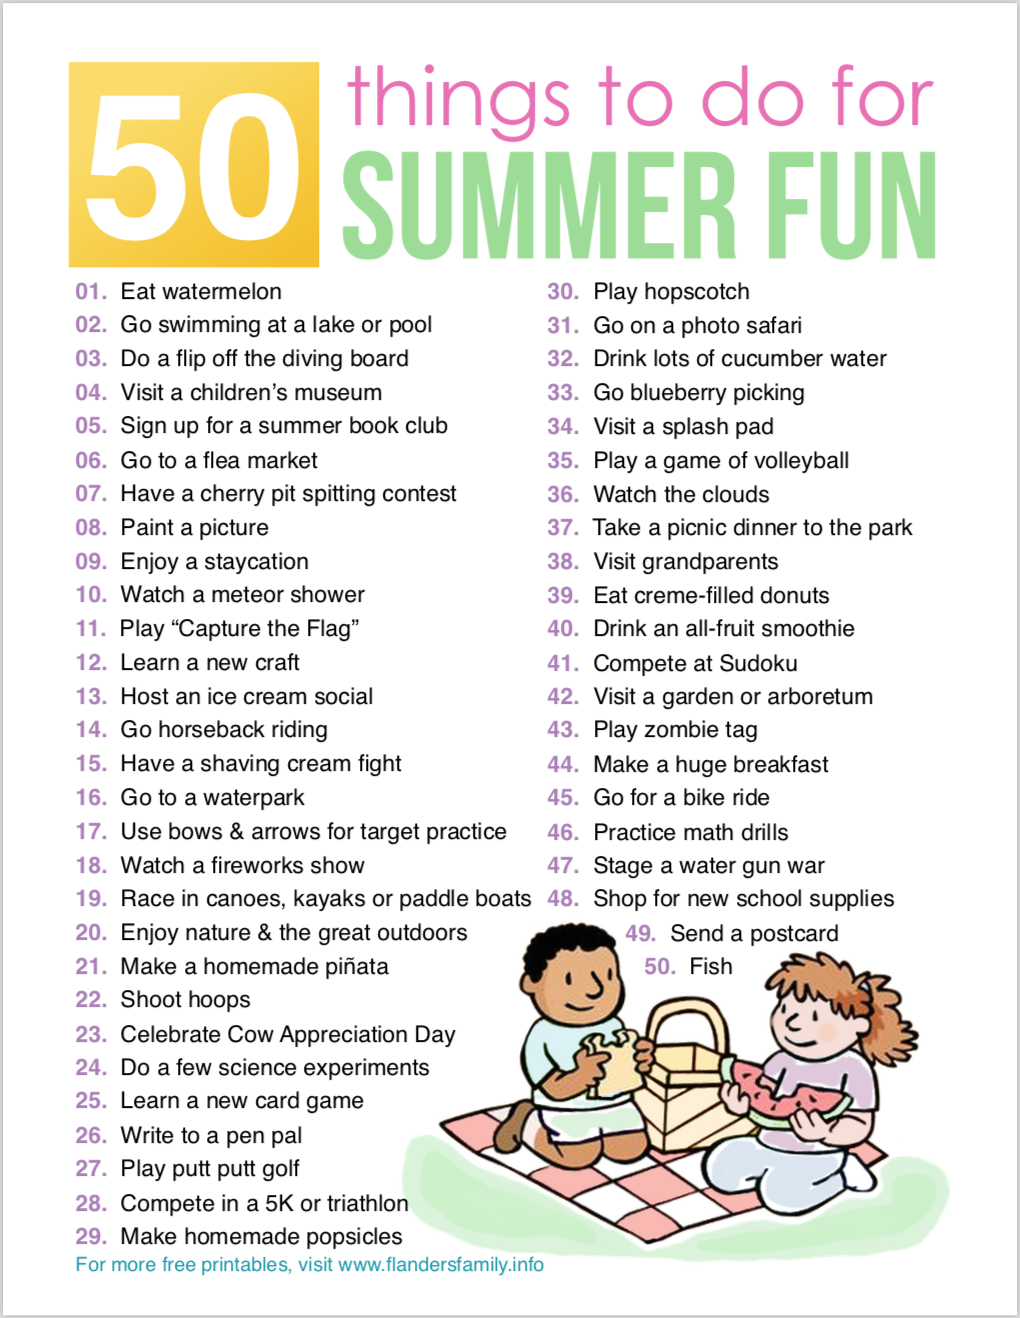 50 Things to Do for Summer Fun